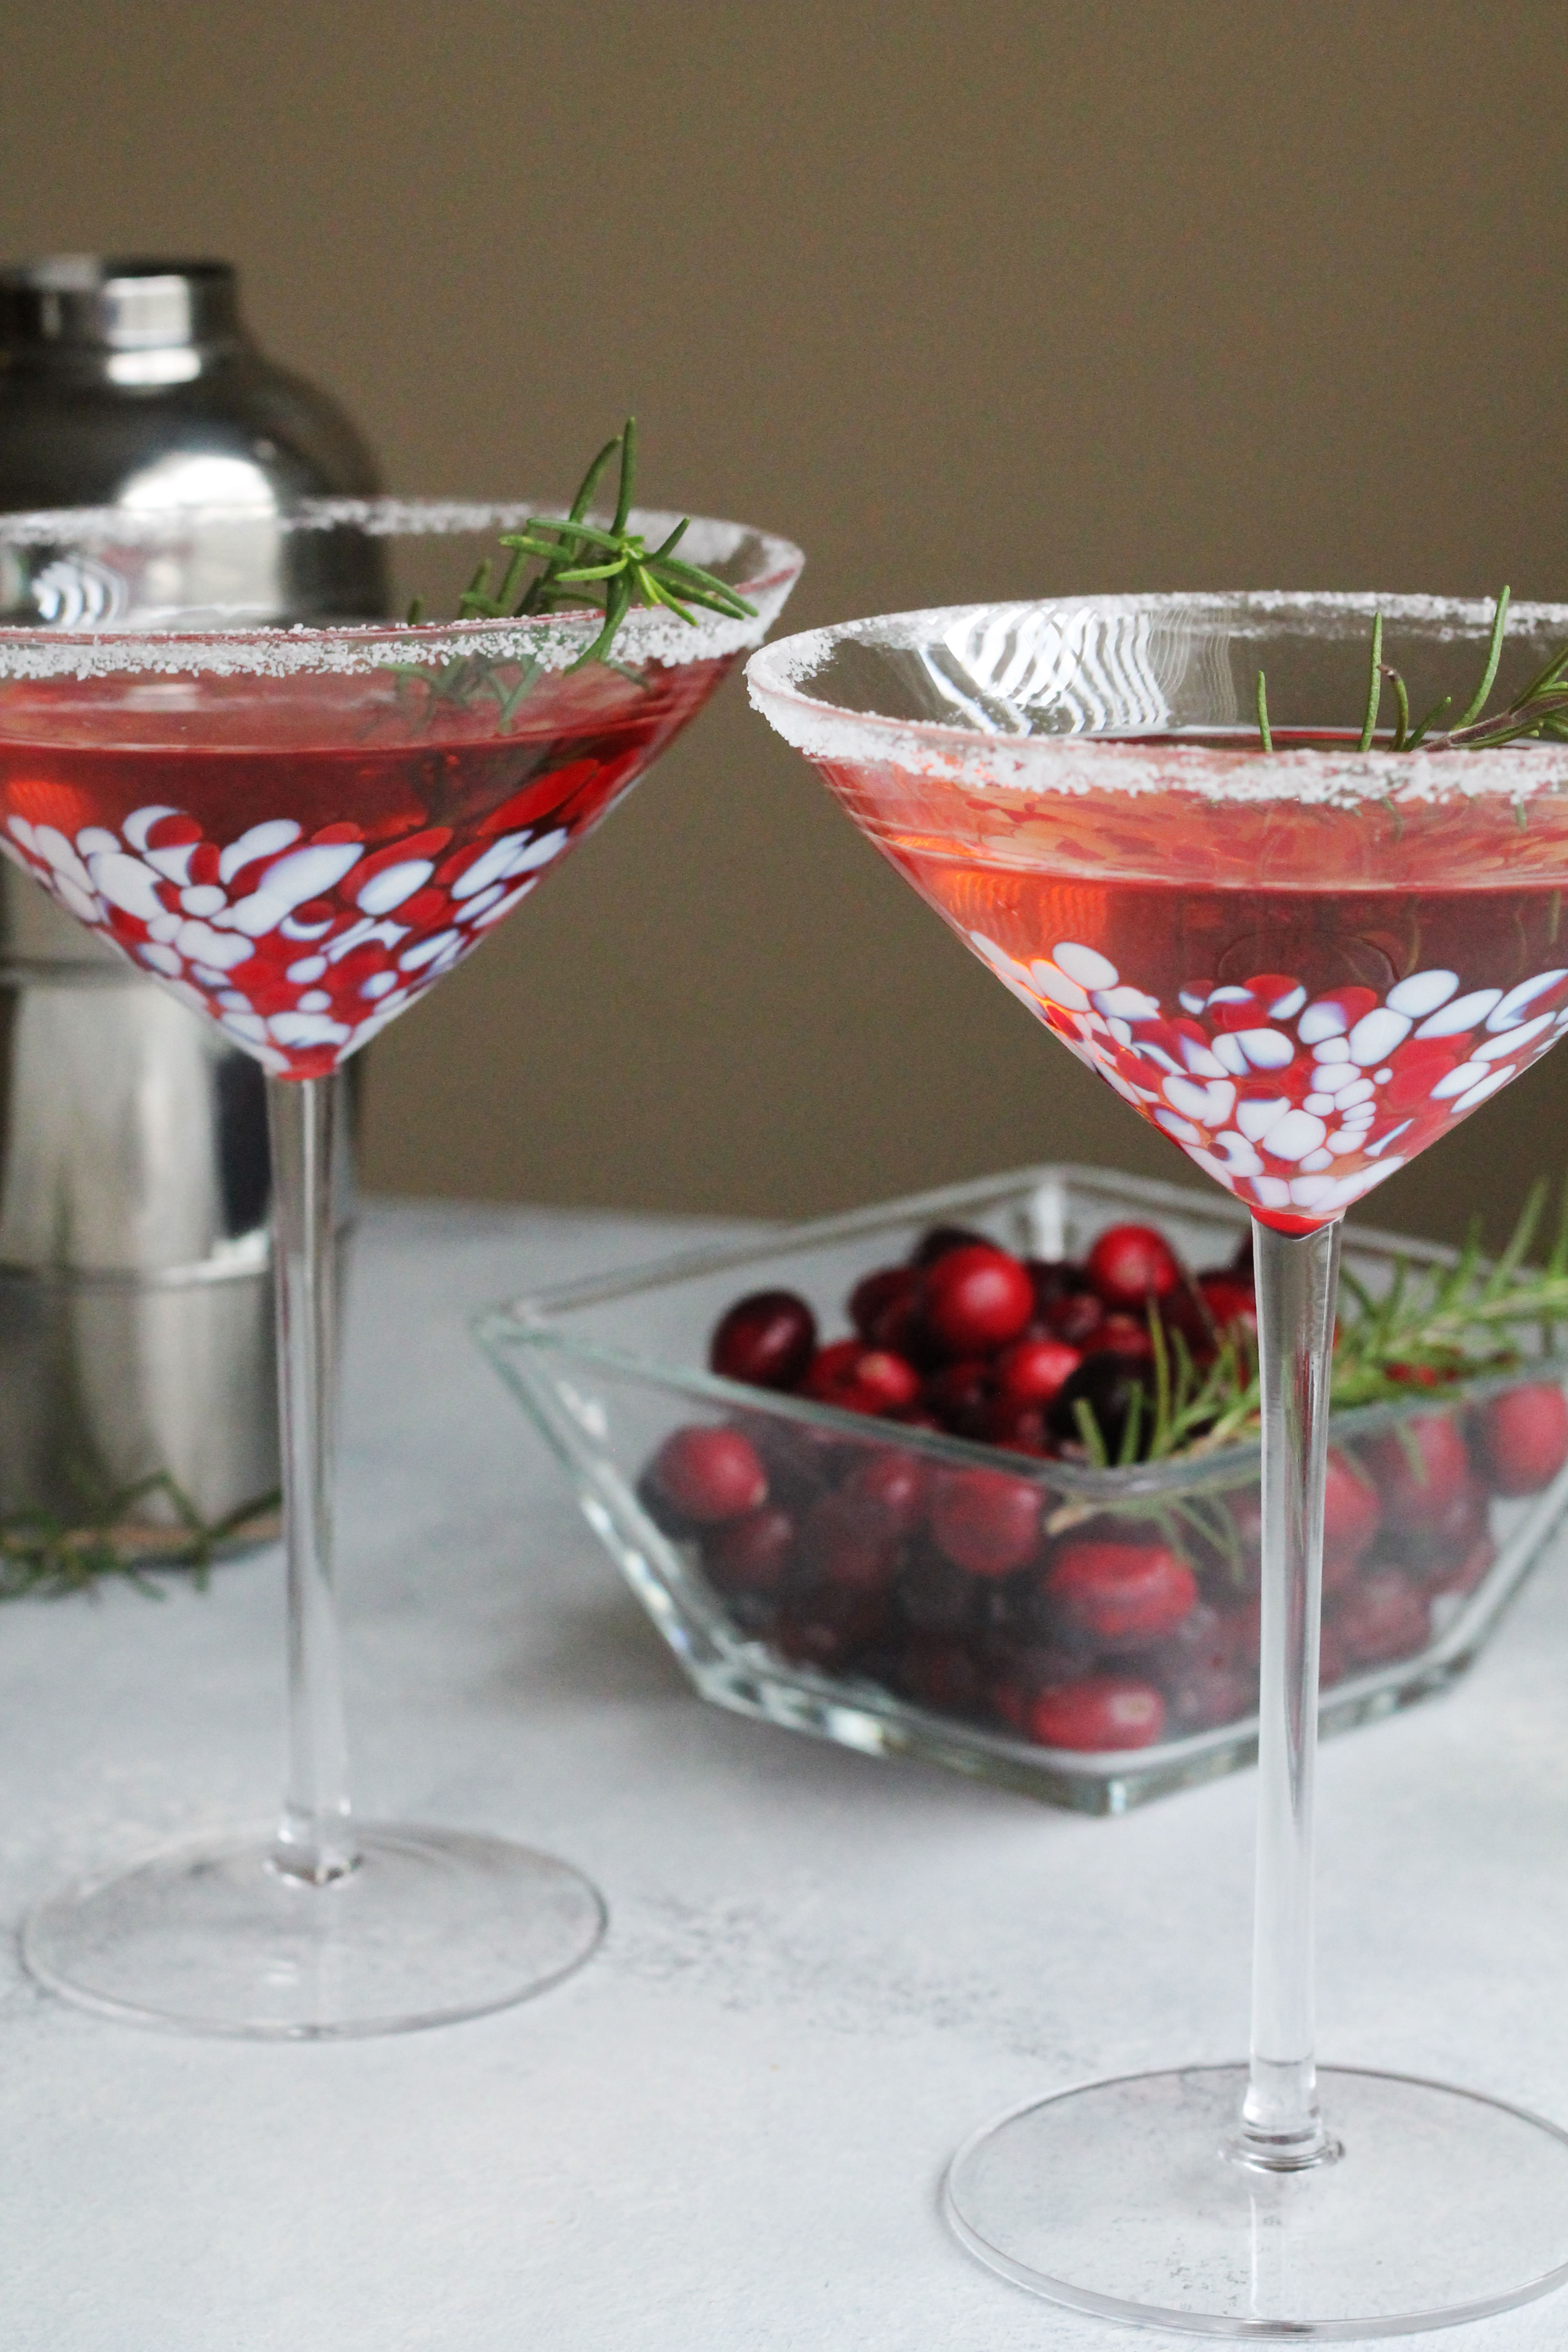 This Winter Cosmo is the perfect holiday cocktail